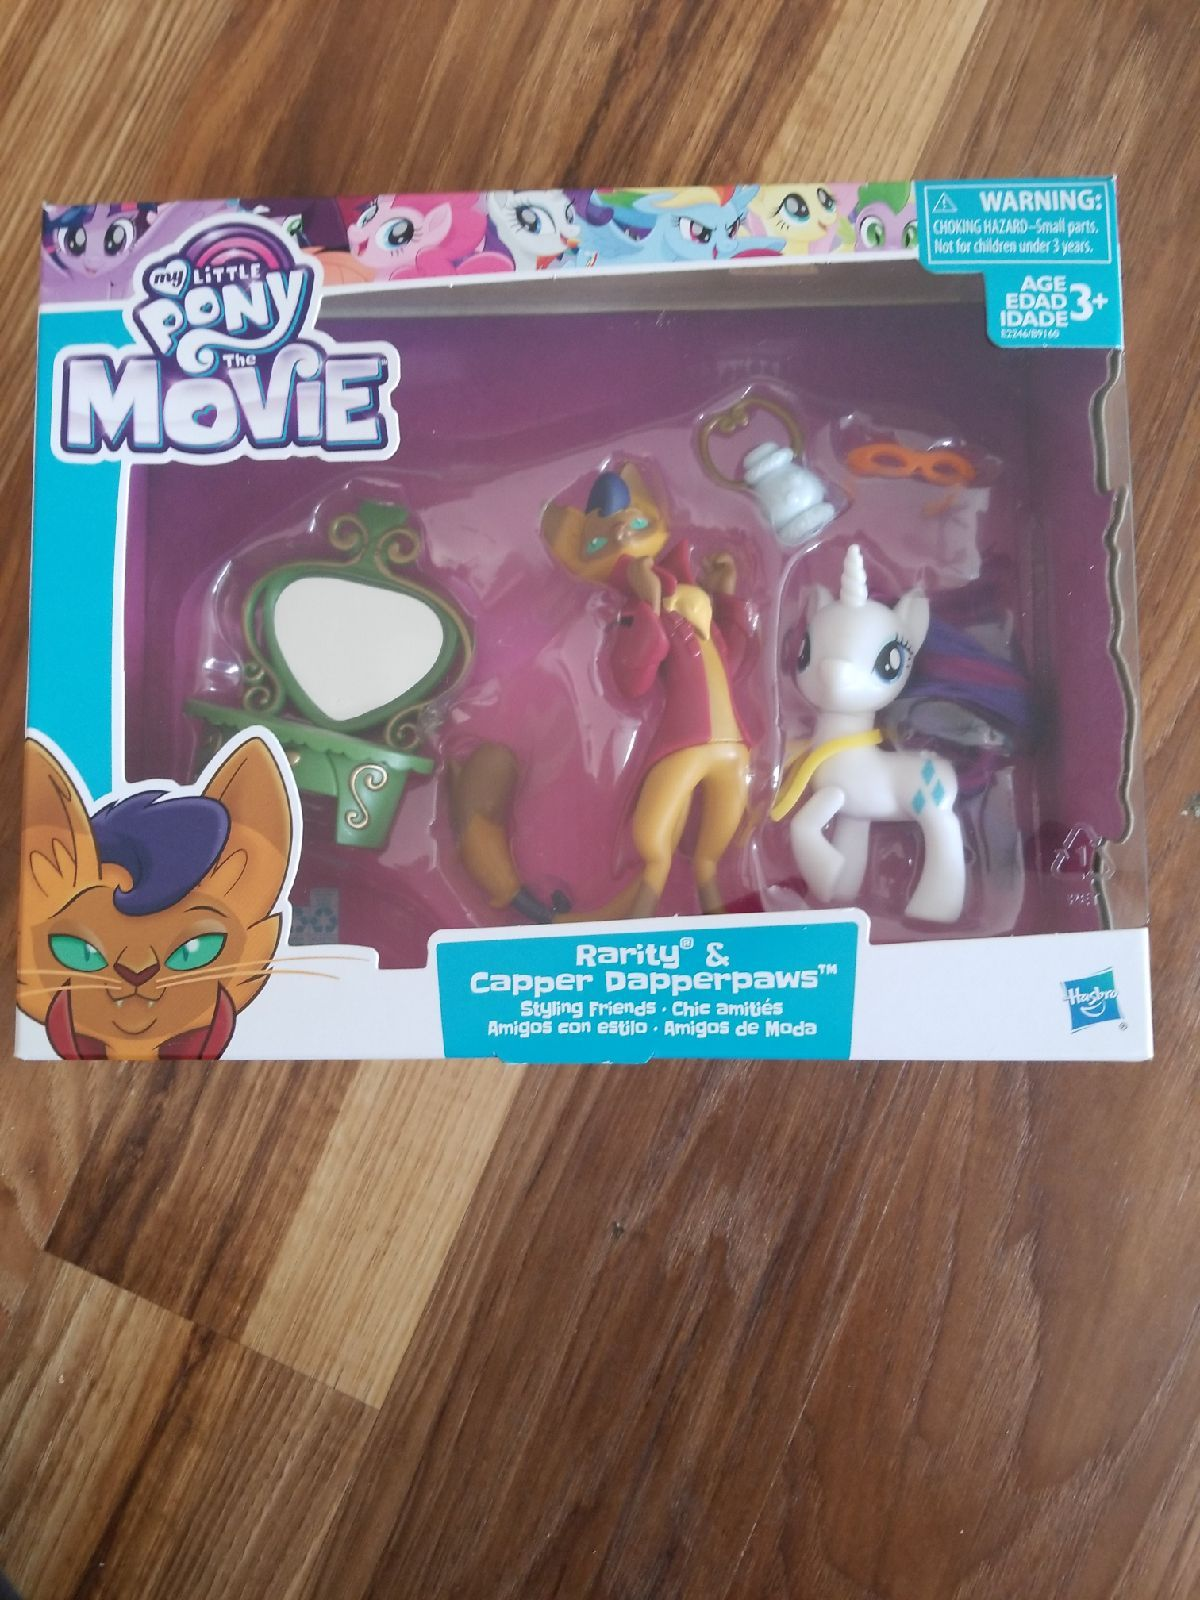 Hasbro My Little Pony The Movie Rarity /& Capper Dapperpaws Action Figure Playset